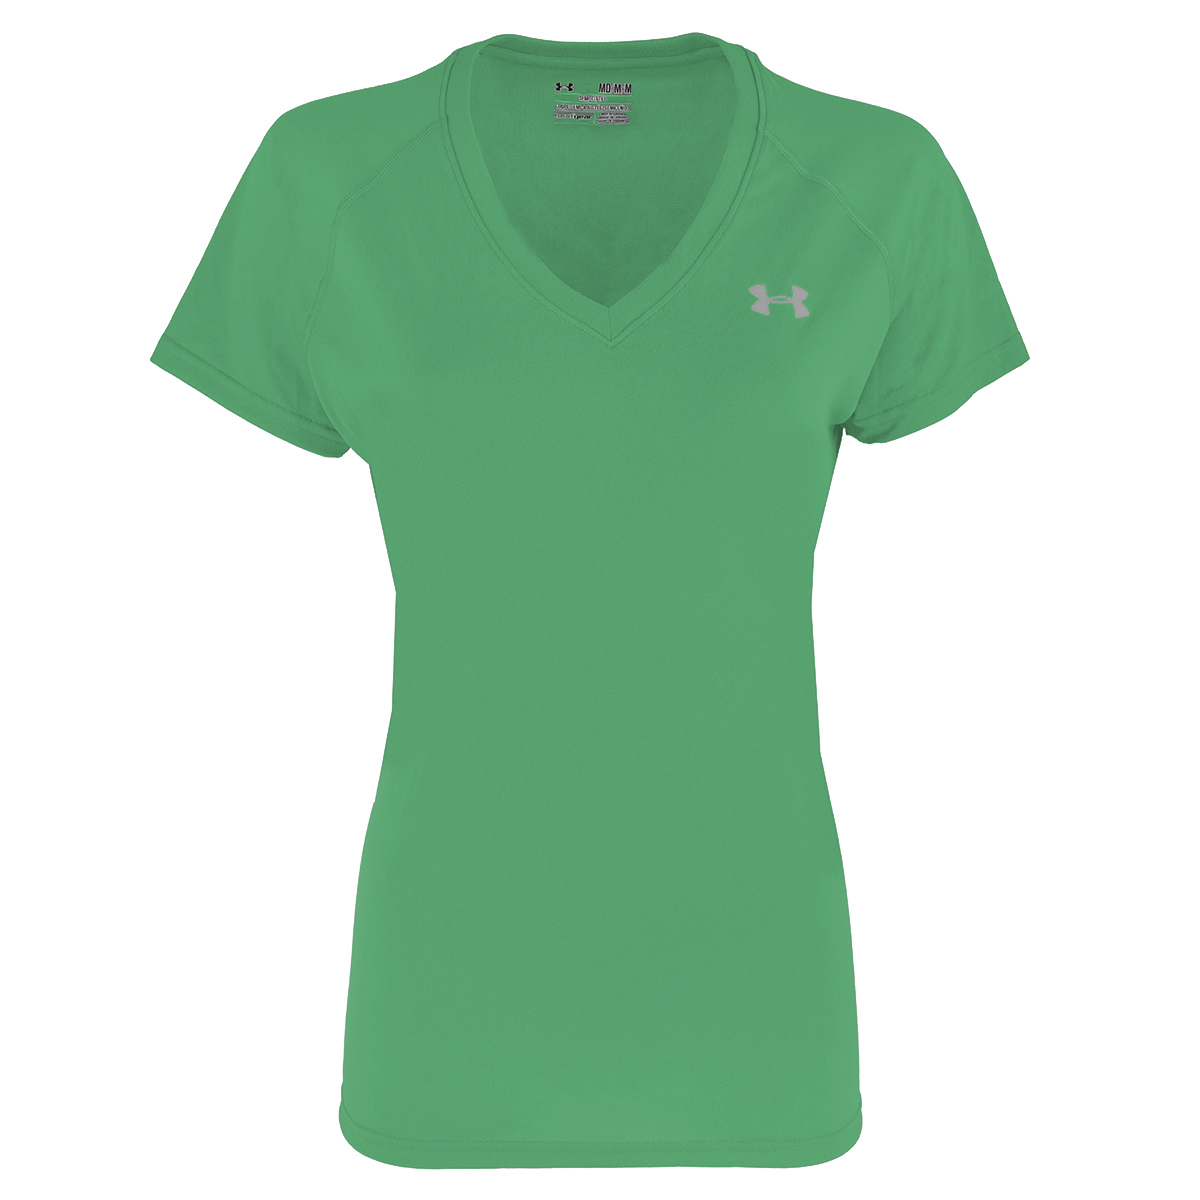 Under-Armour-Women-039-s-UA-Tech-V-Neck-T-Shirt